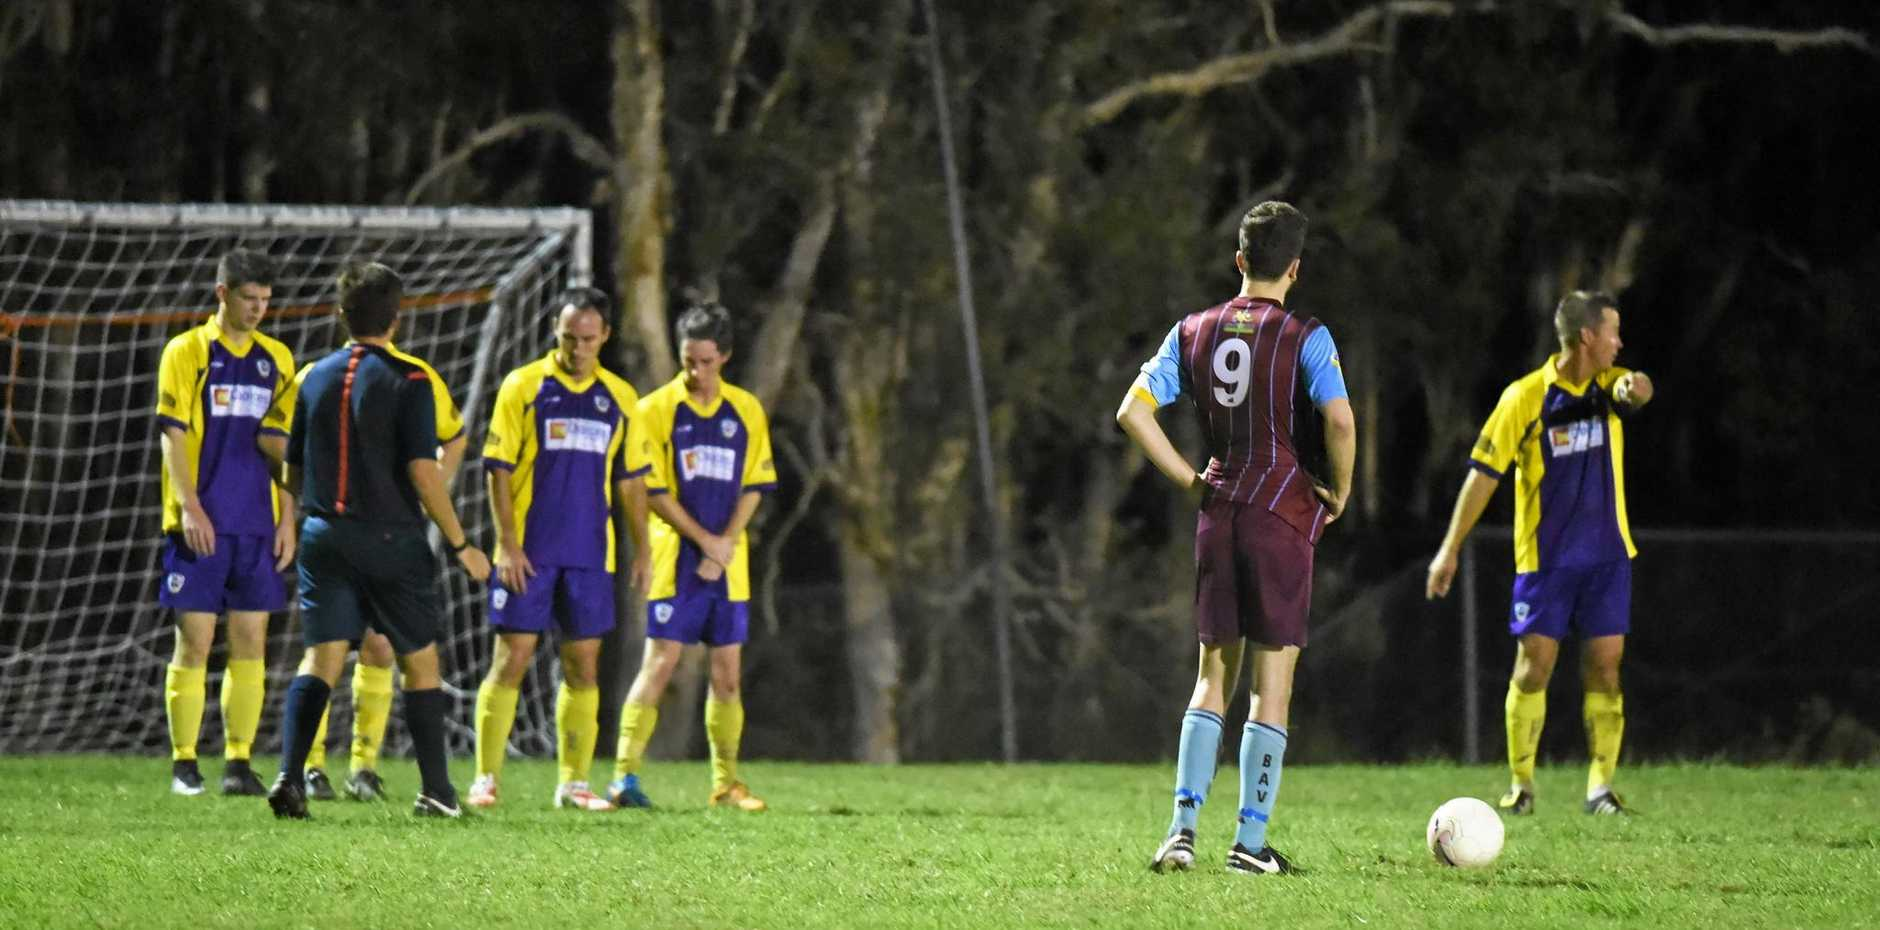 FINAL SHOT: Brothers Aston Villa's Blake O'Brien lines up a free kick against the Warriors.